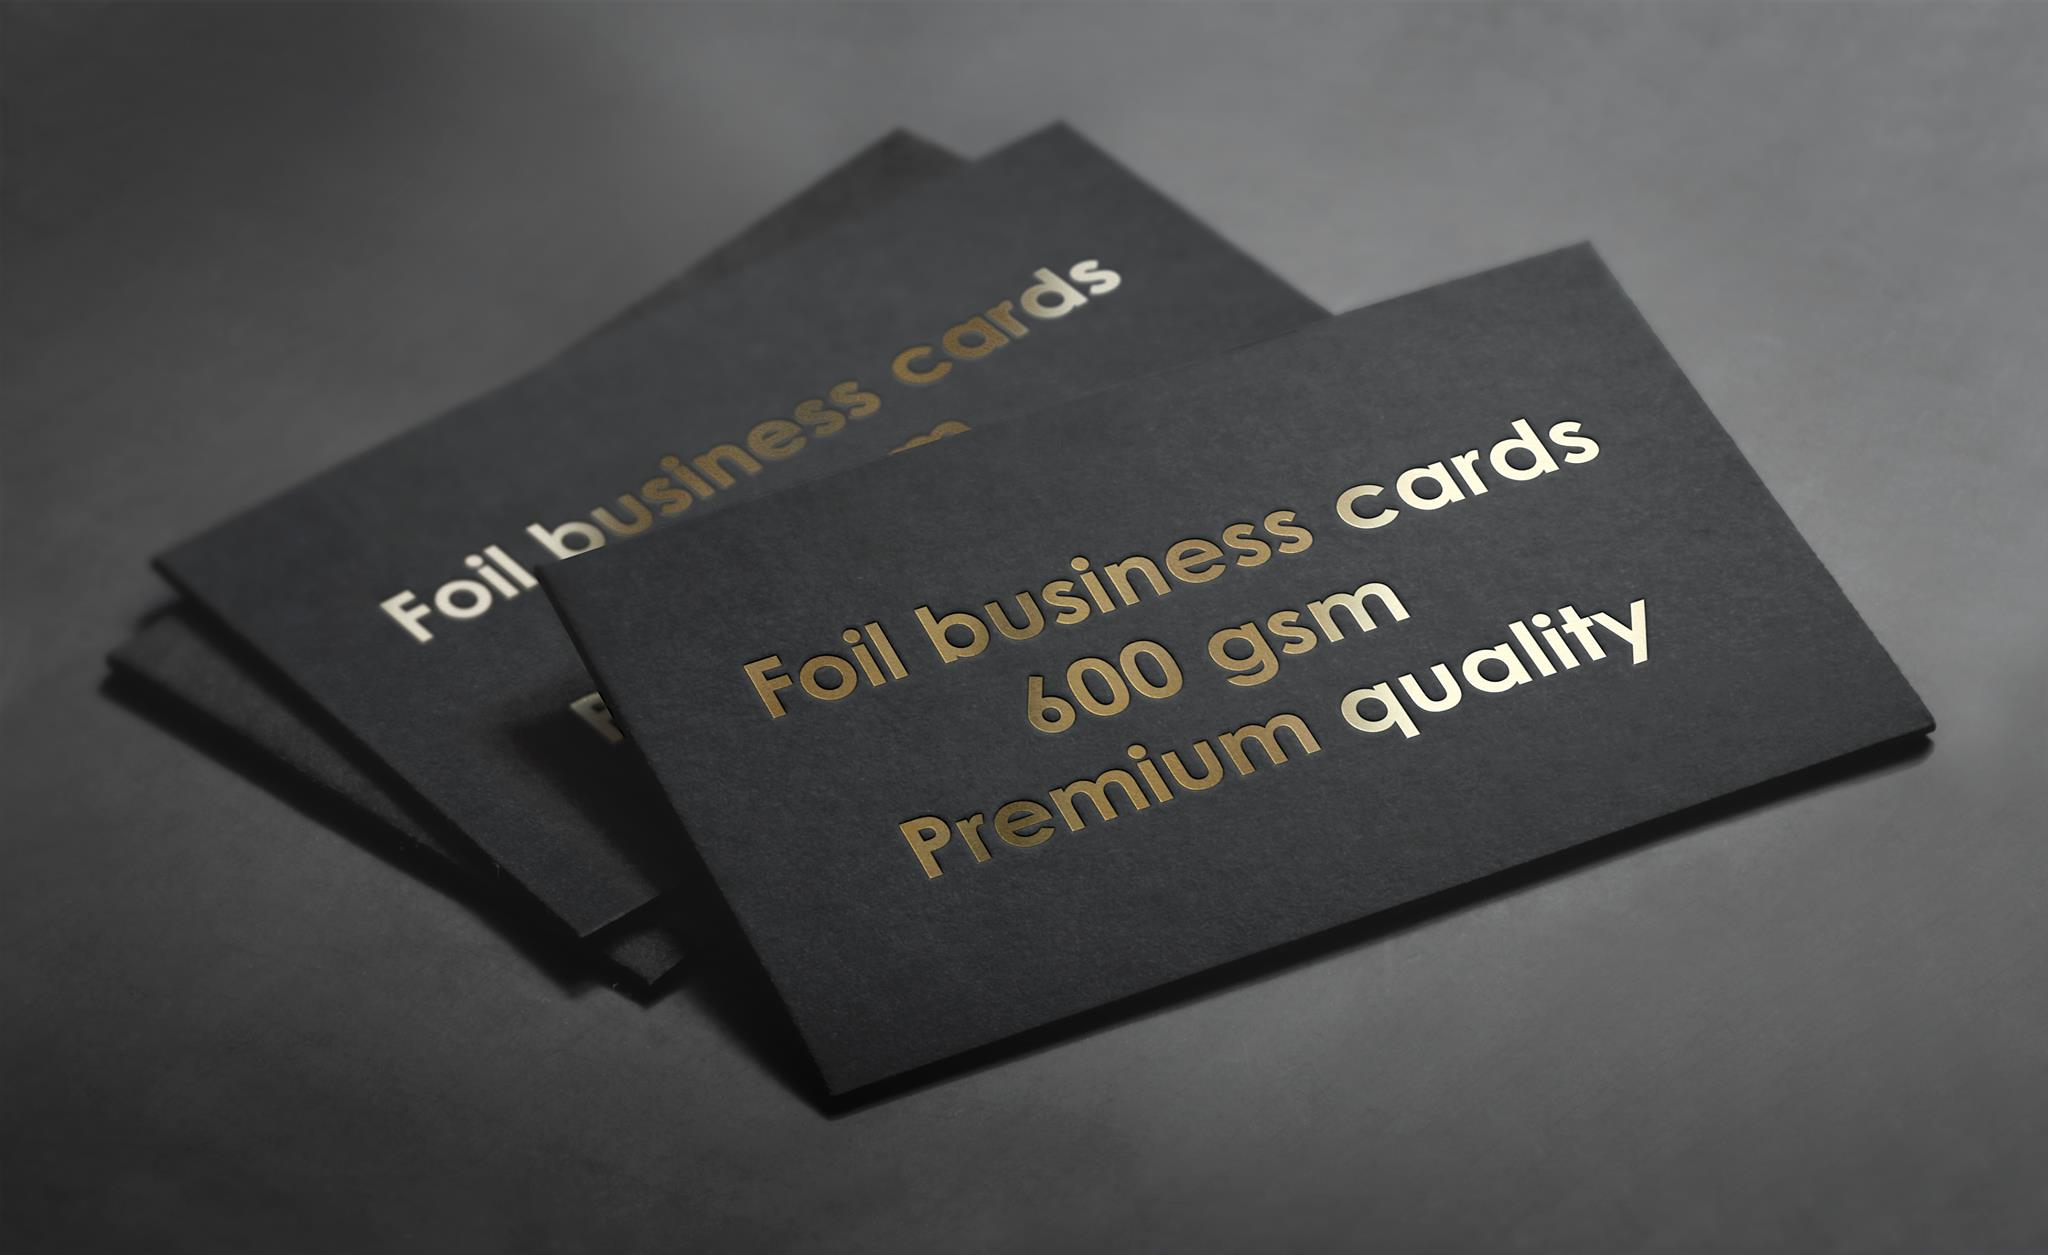 Hot foiled business cards